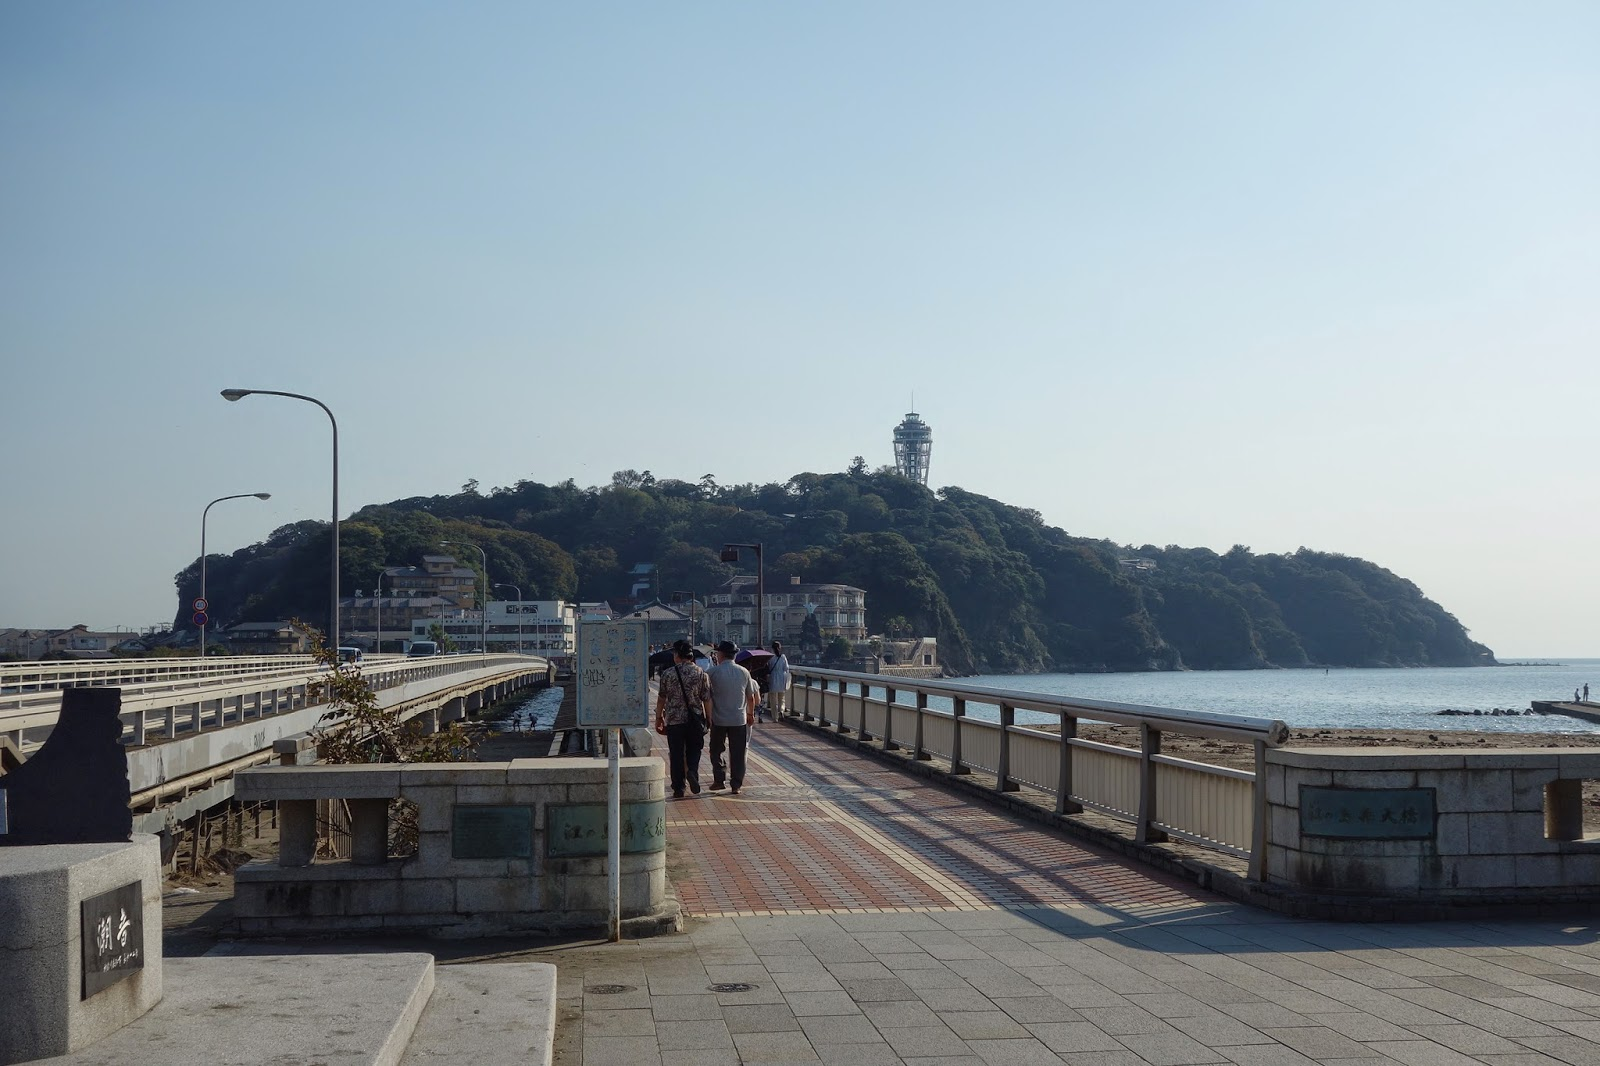 Kamakura Day trip Sep Enoshima